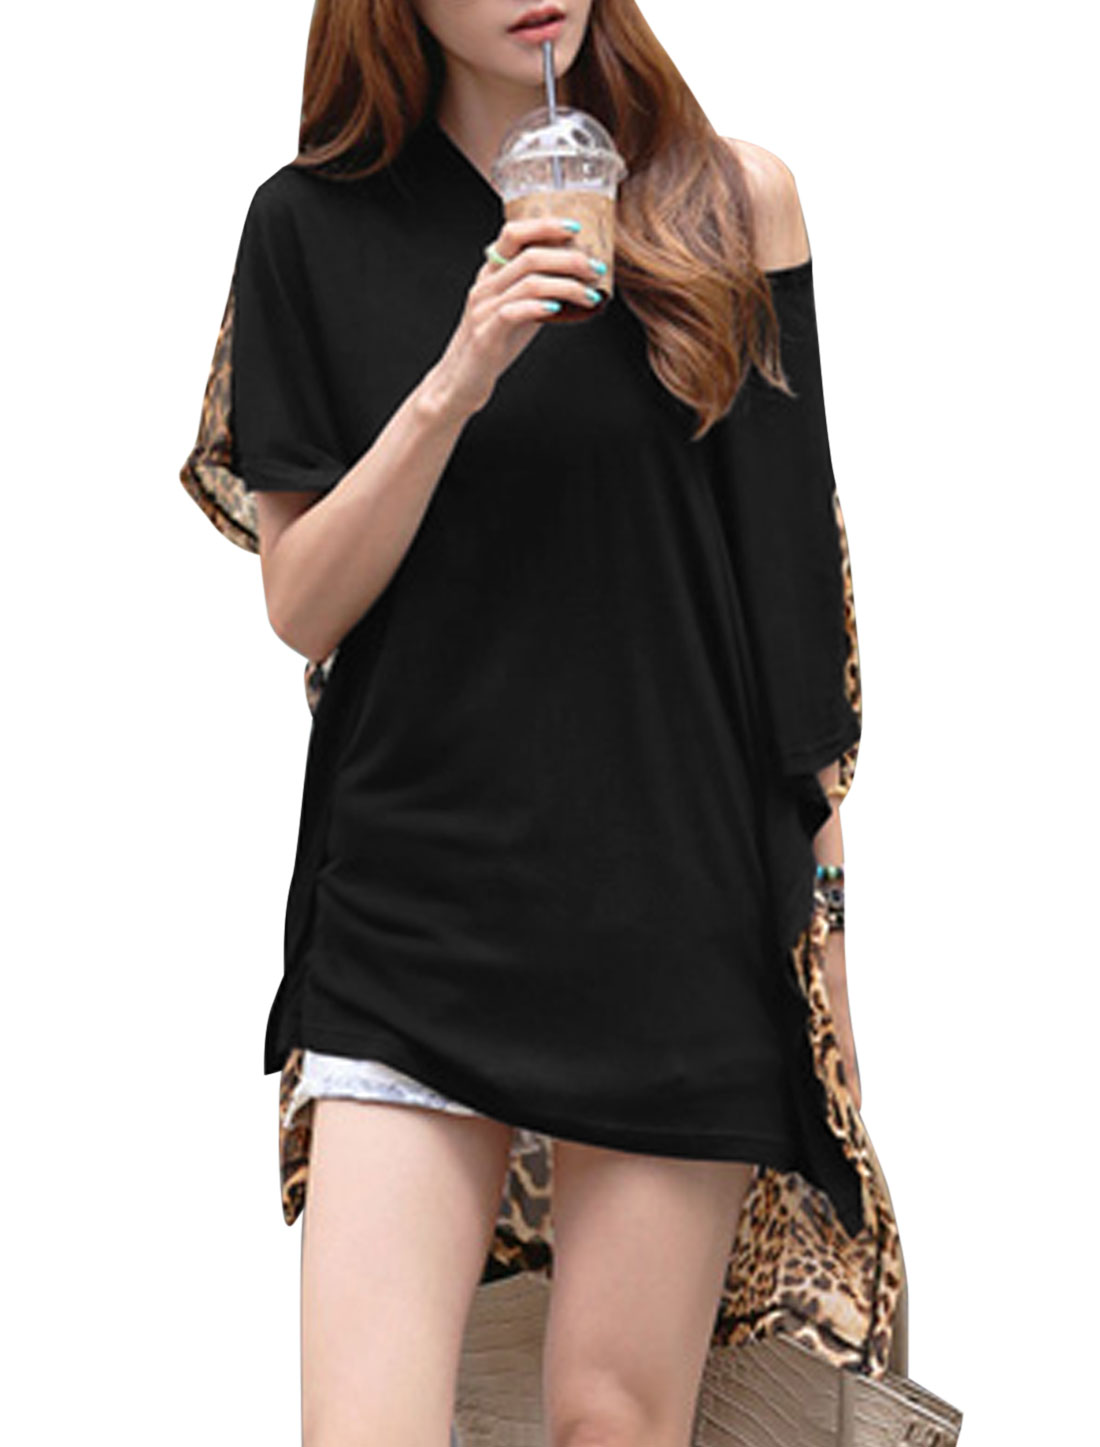 Lady Cape Sleeve Leopard Pattern Panel Casual Tunic Top Black XS